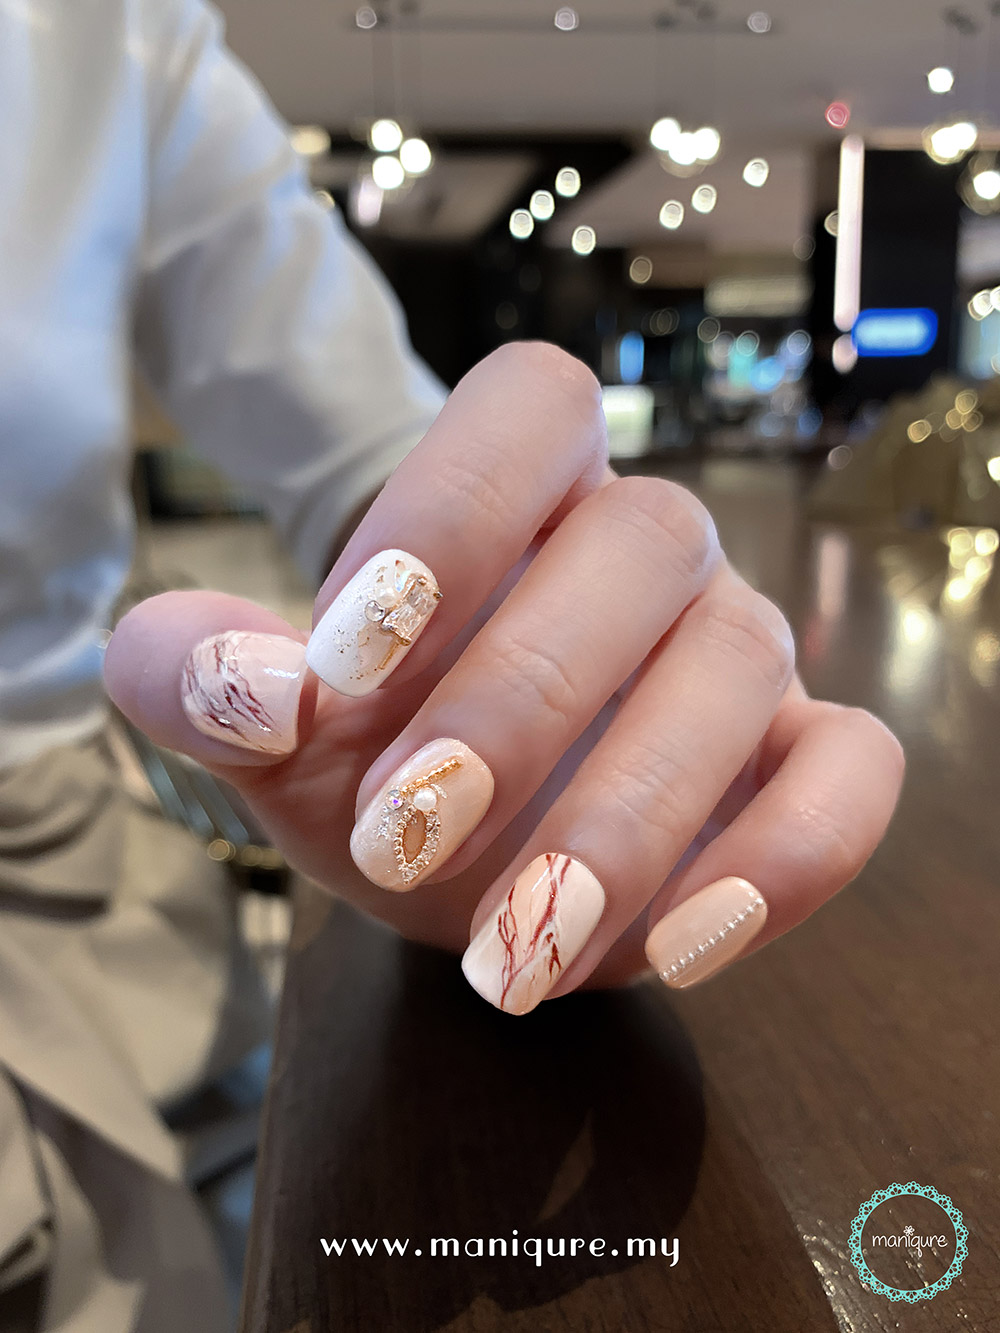 Europa Marble Nails – Jupiter's Moon Manicure